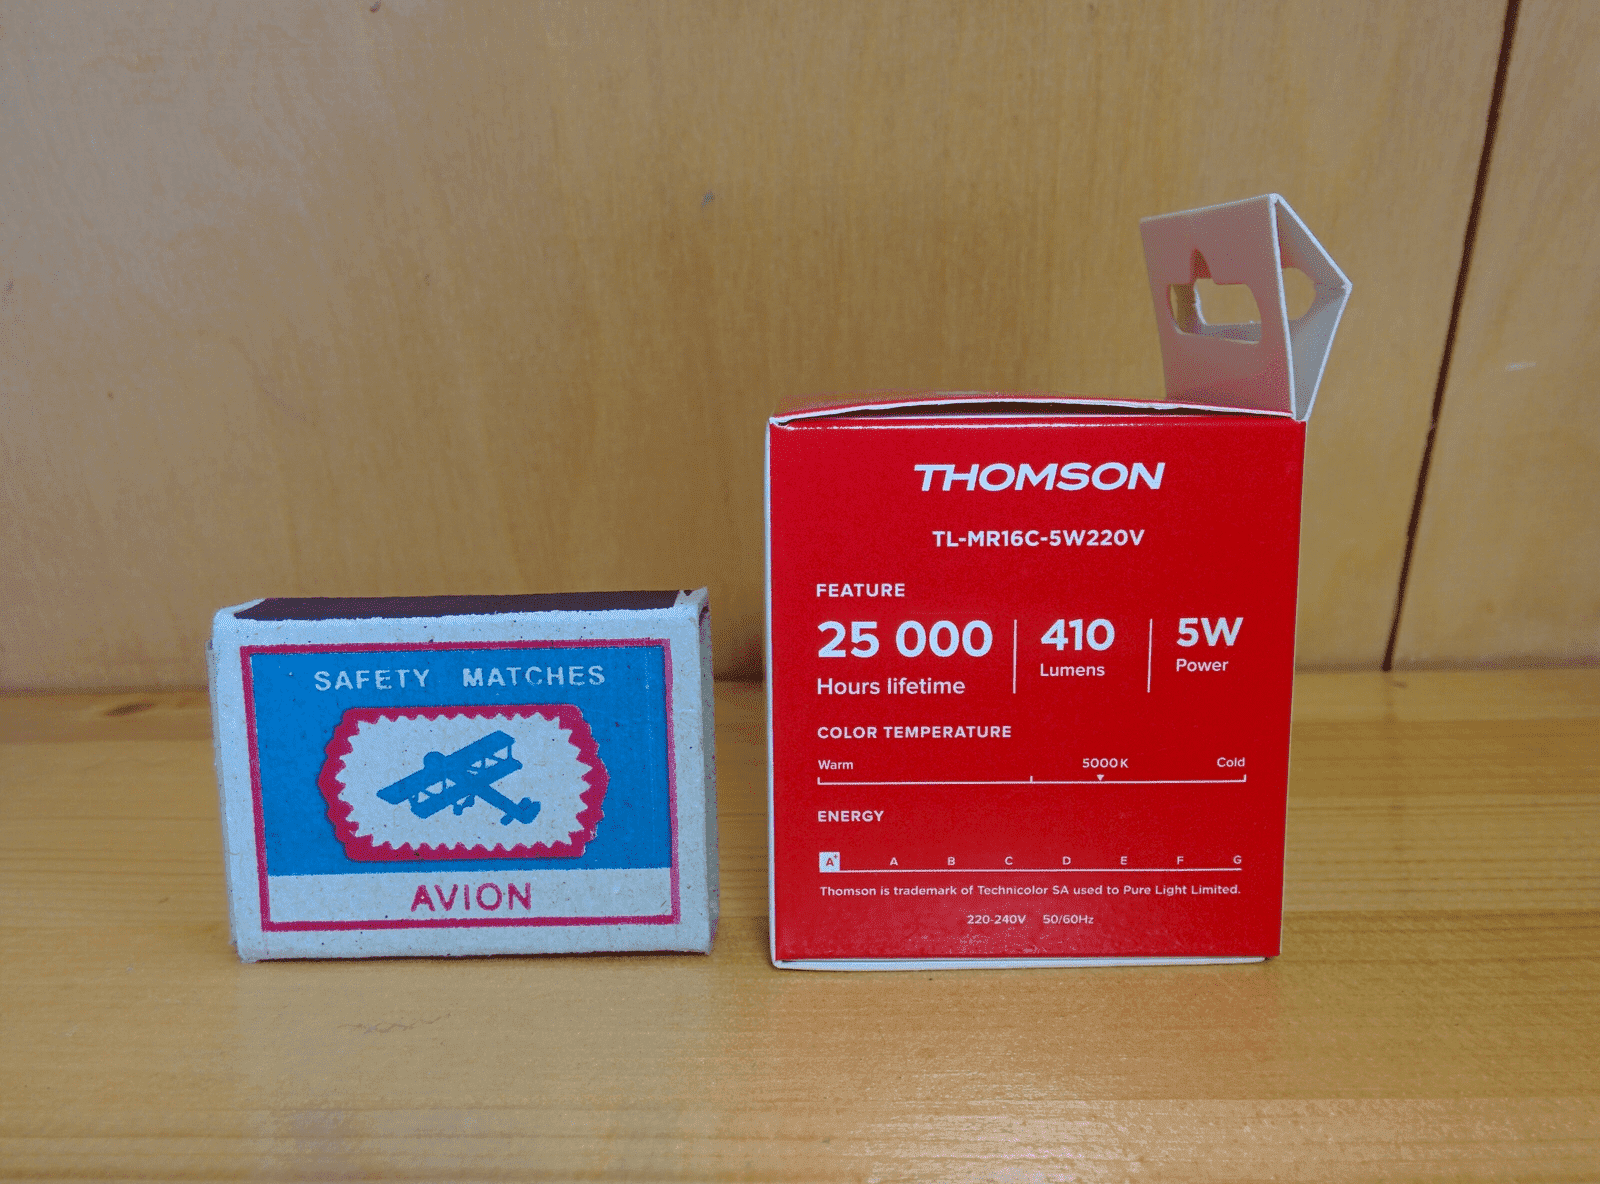 Thomson TL-MR16C-5W220V характеристики